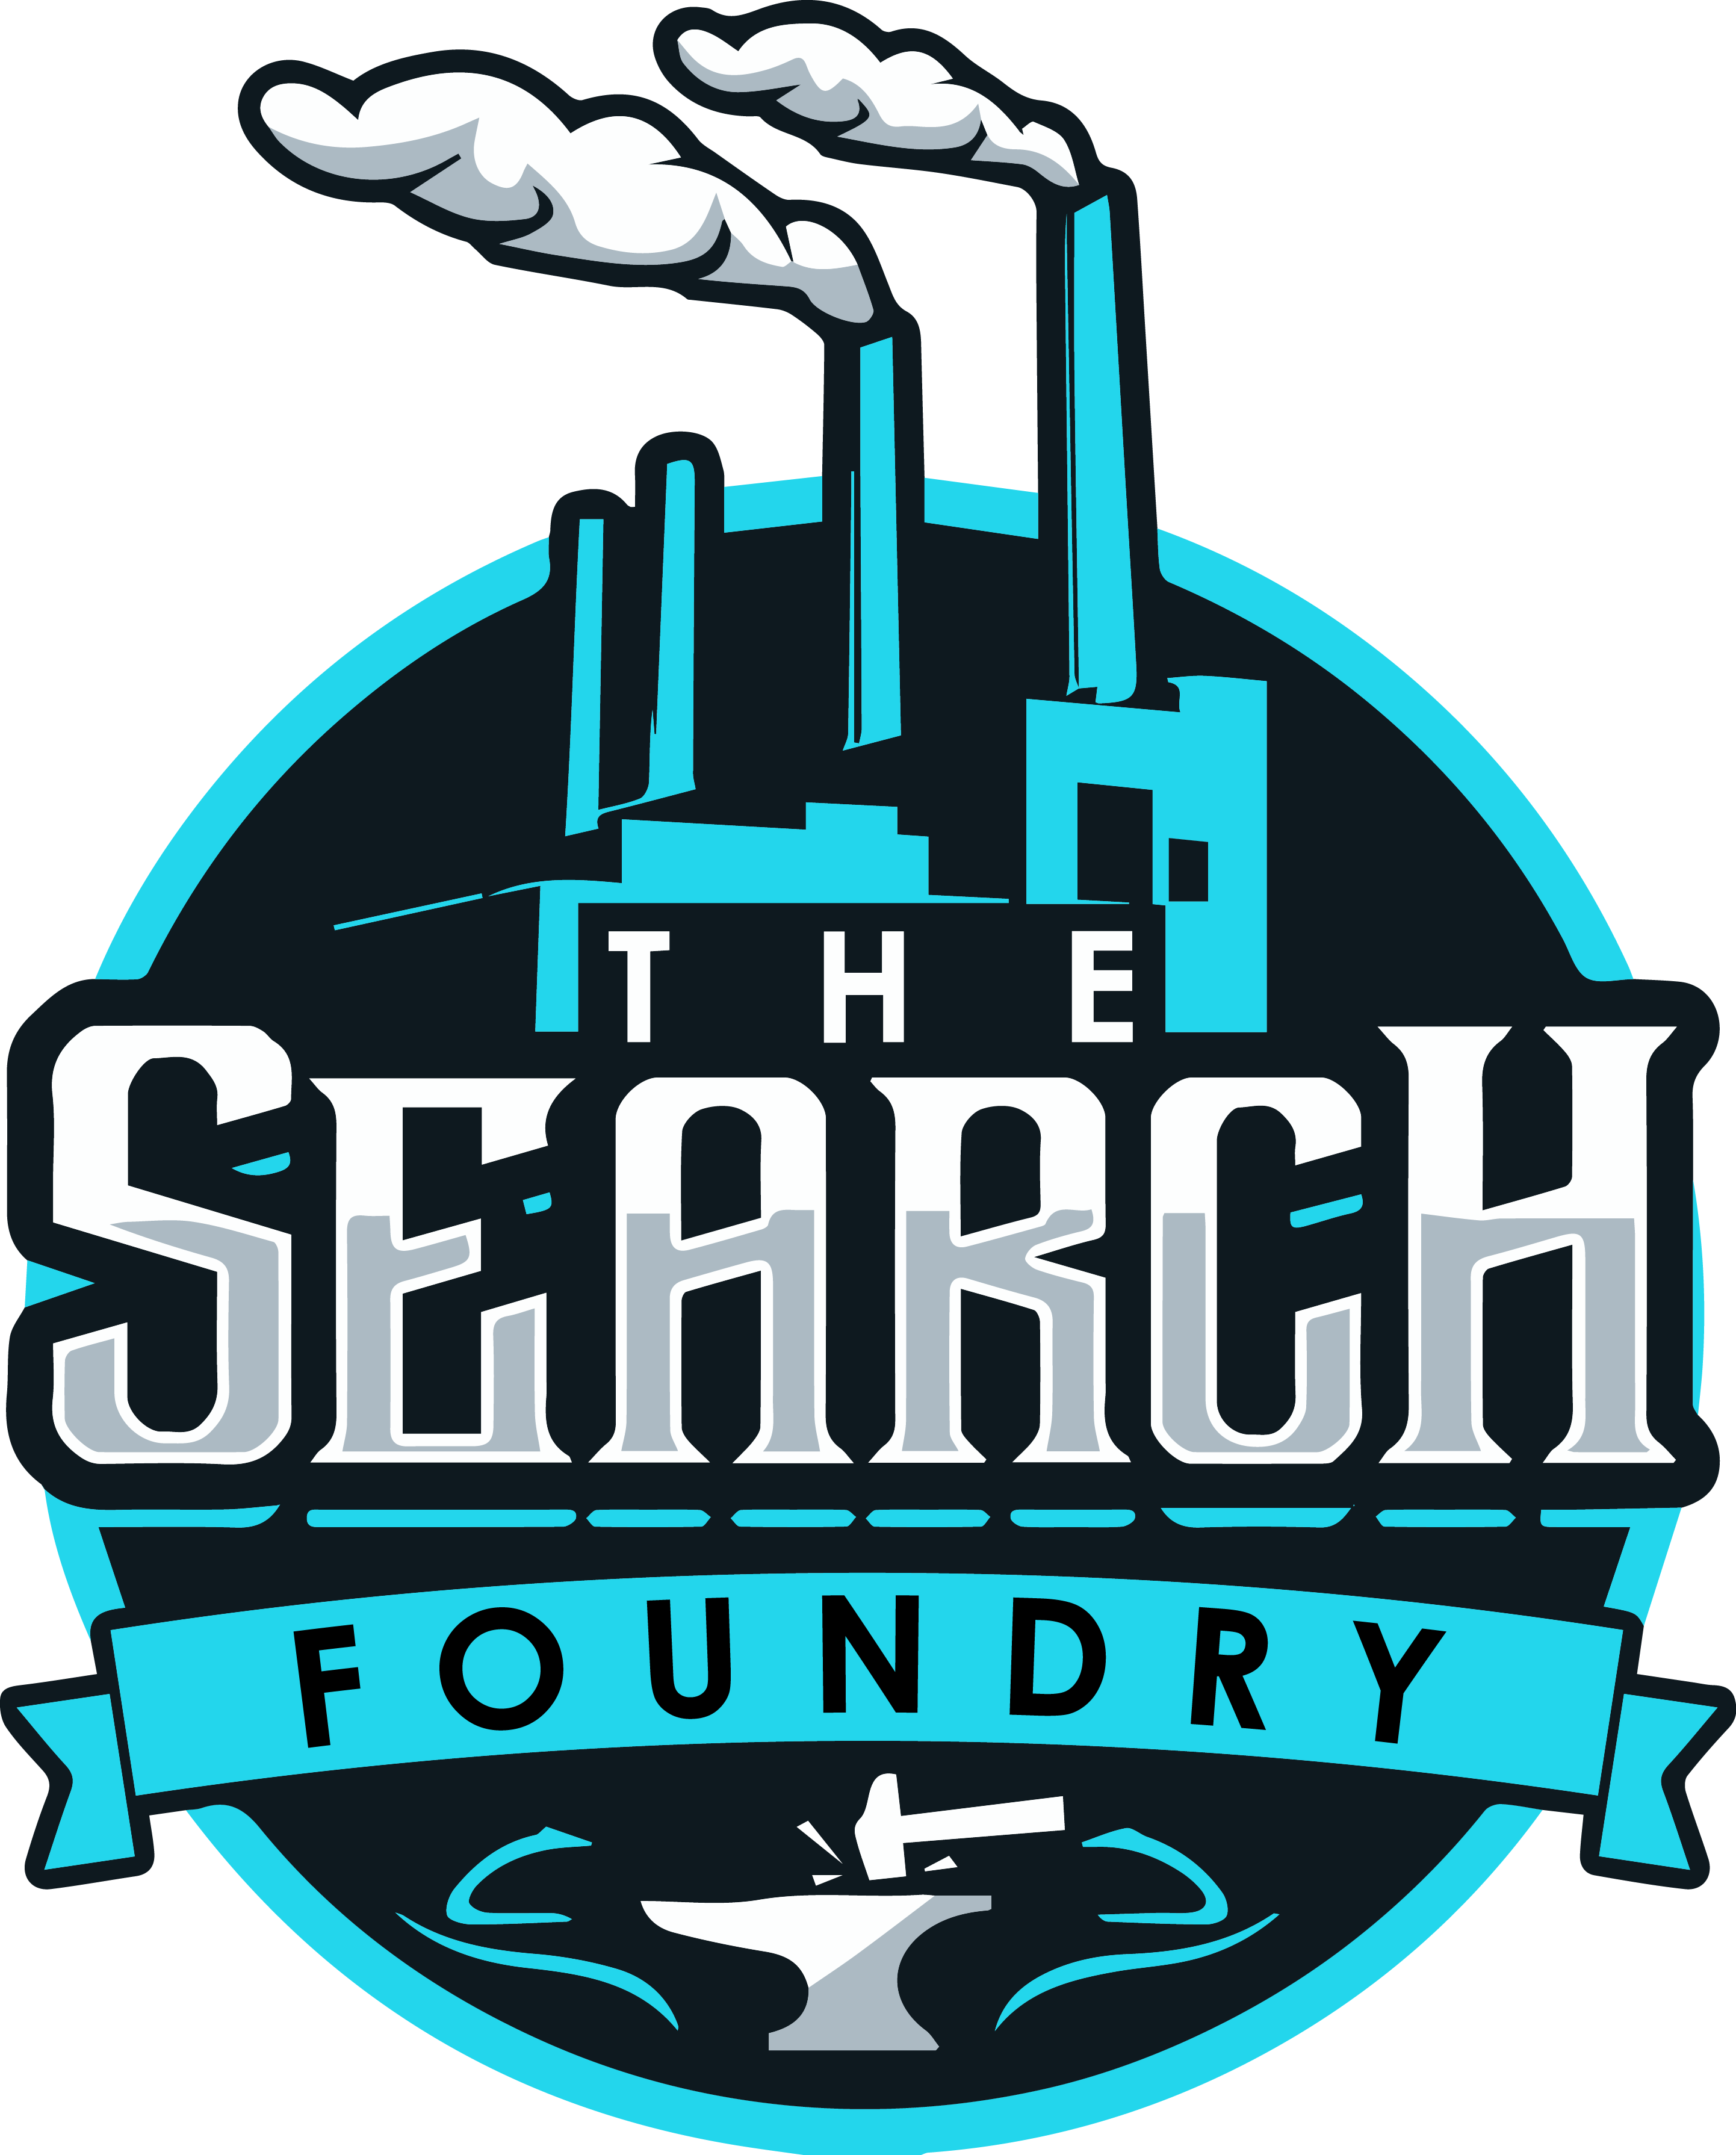 Design something strong for The Search Foundry